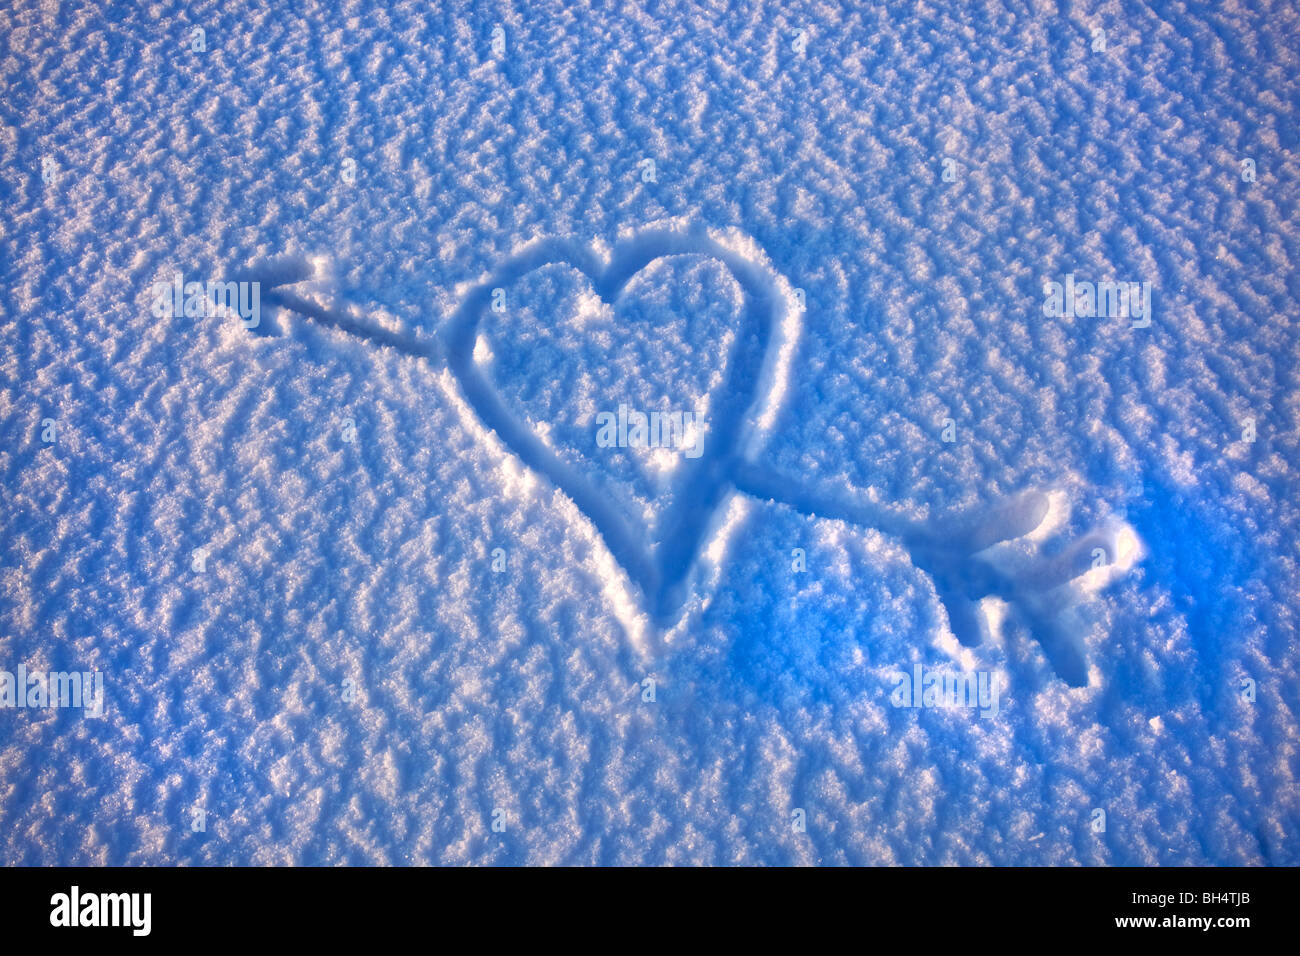 a love heart with cupids arrow through it drawn in the snow - Stock Image